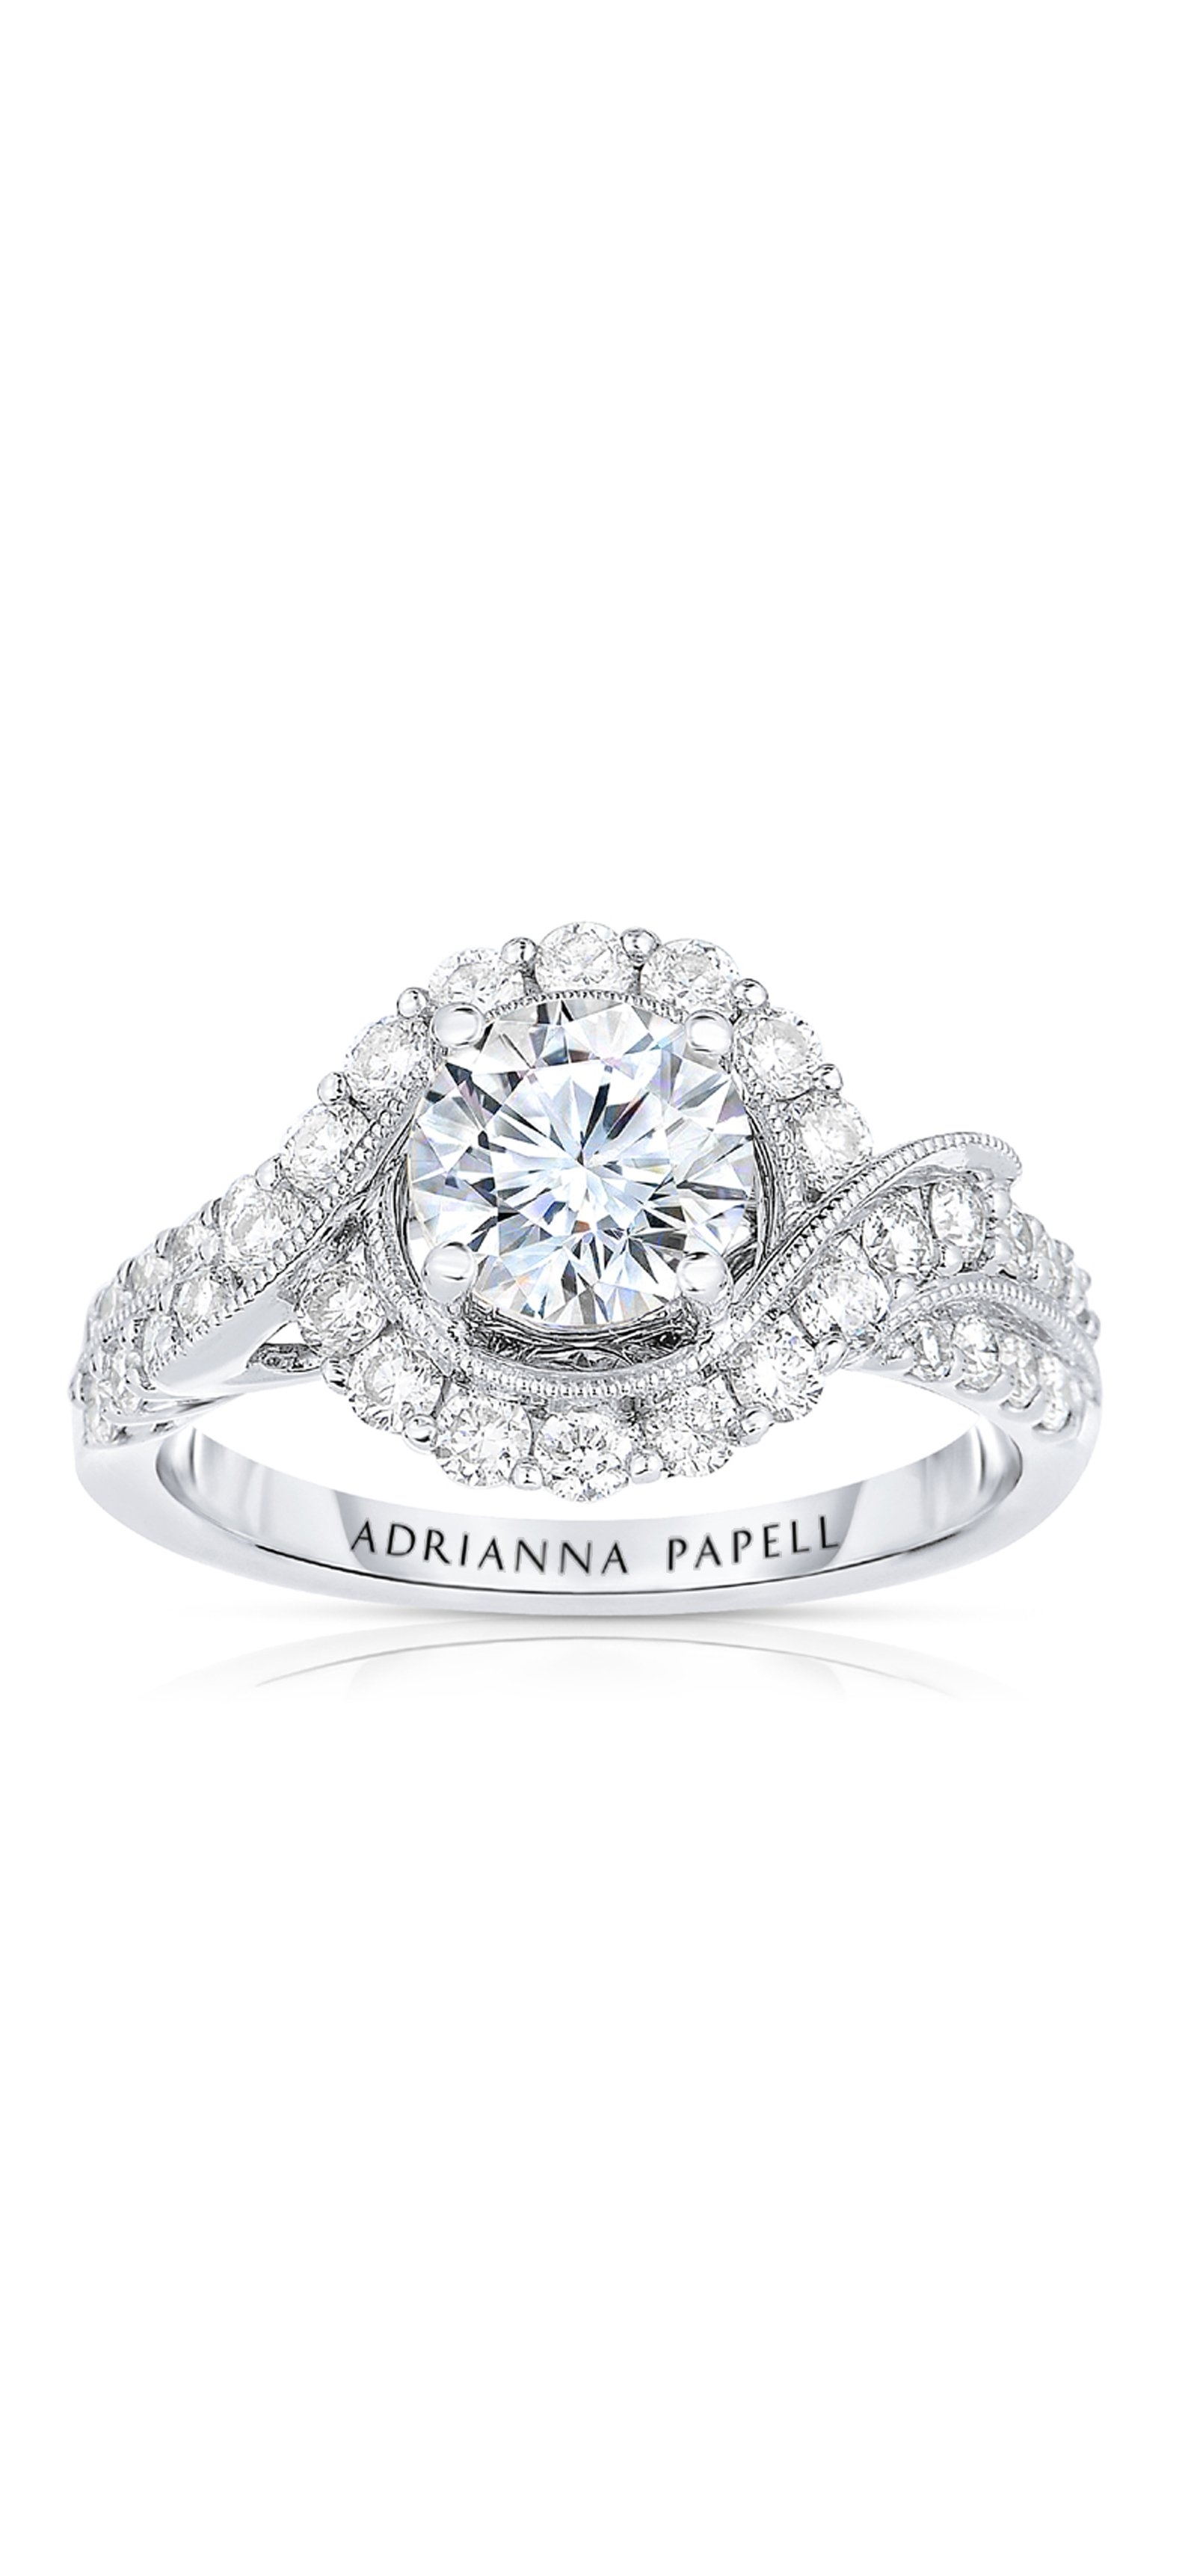 Diamond Engagement Ring Collection In Partnership With Zales Outlet For Latest Oval Diamond Double Frame Twist Vintage Style Bridal Rings In 14K White Gold (View 7 of 15)